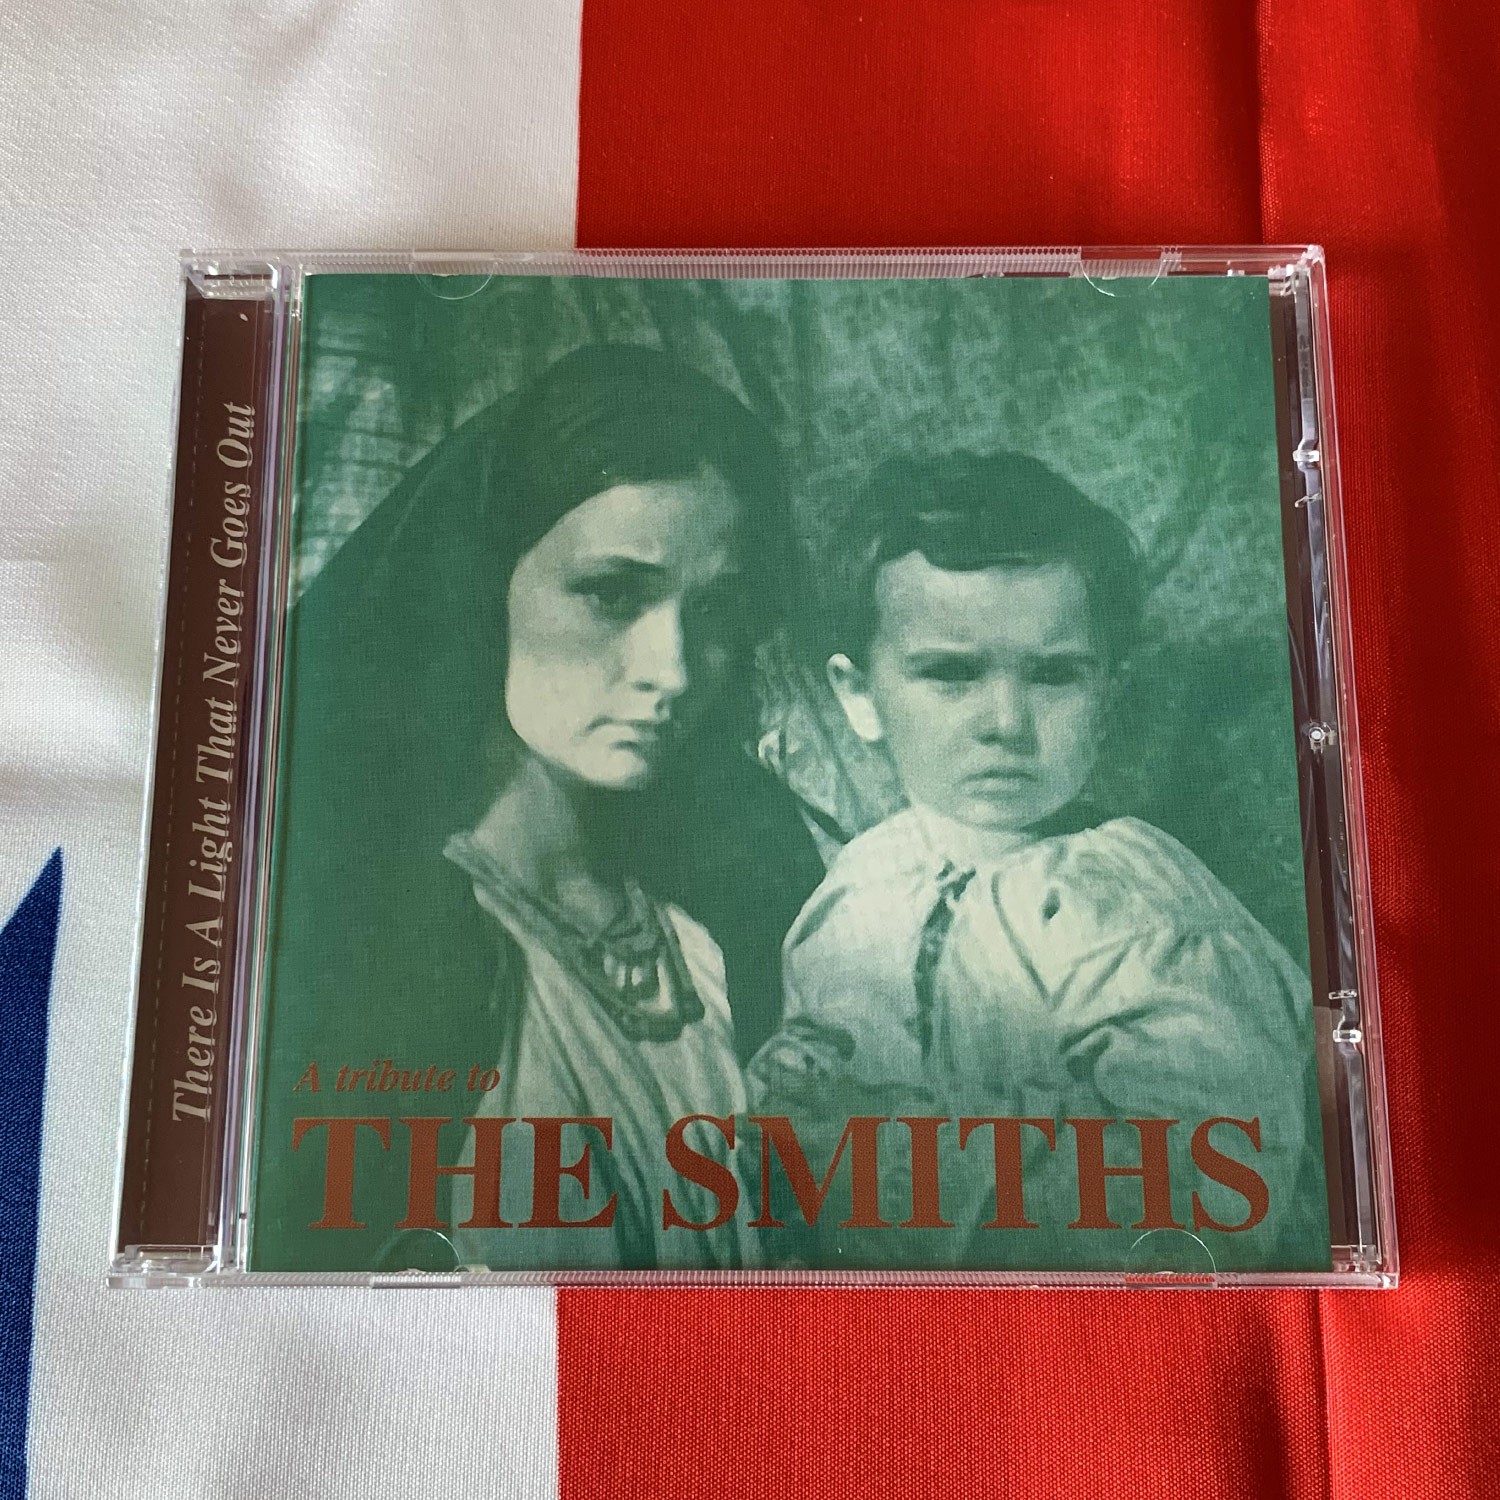 Smiths_CD_tribute04.jpg